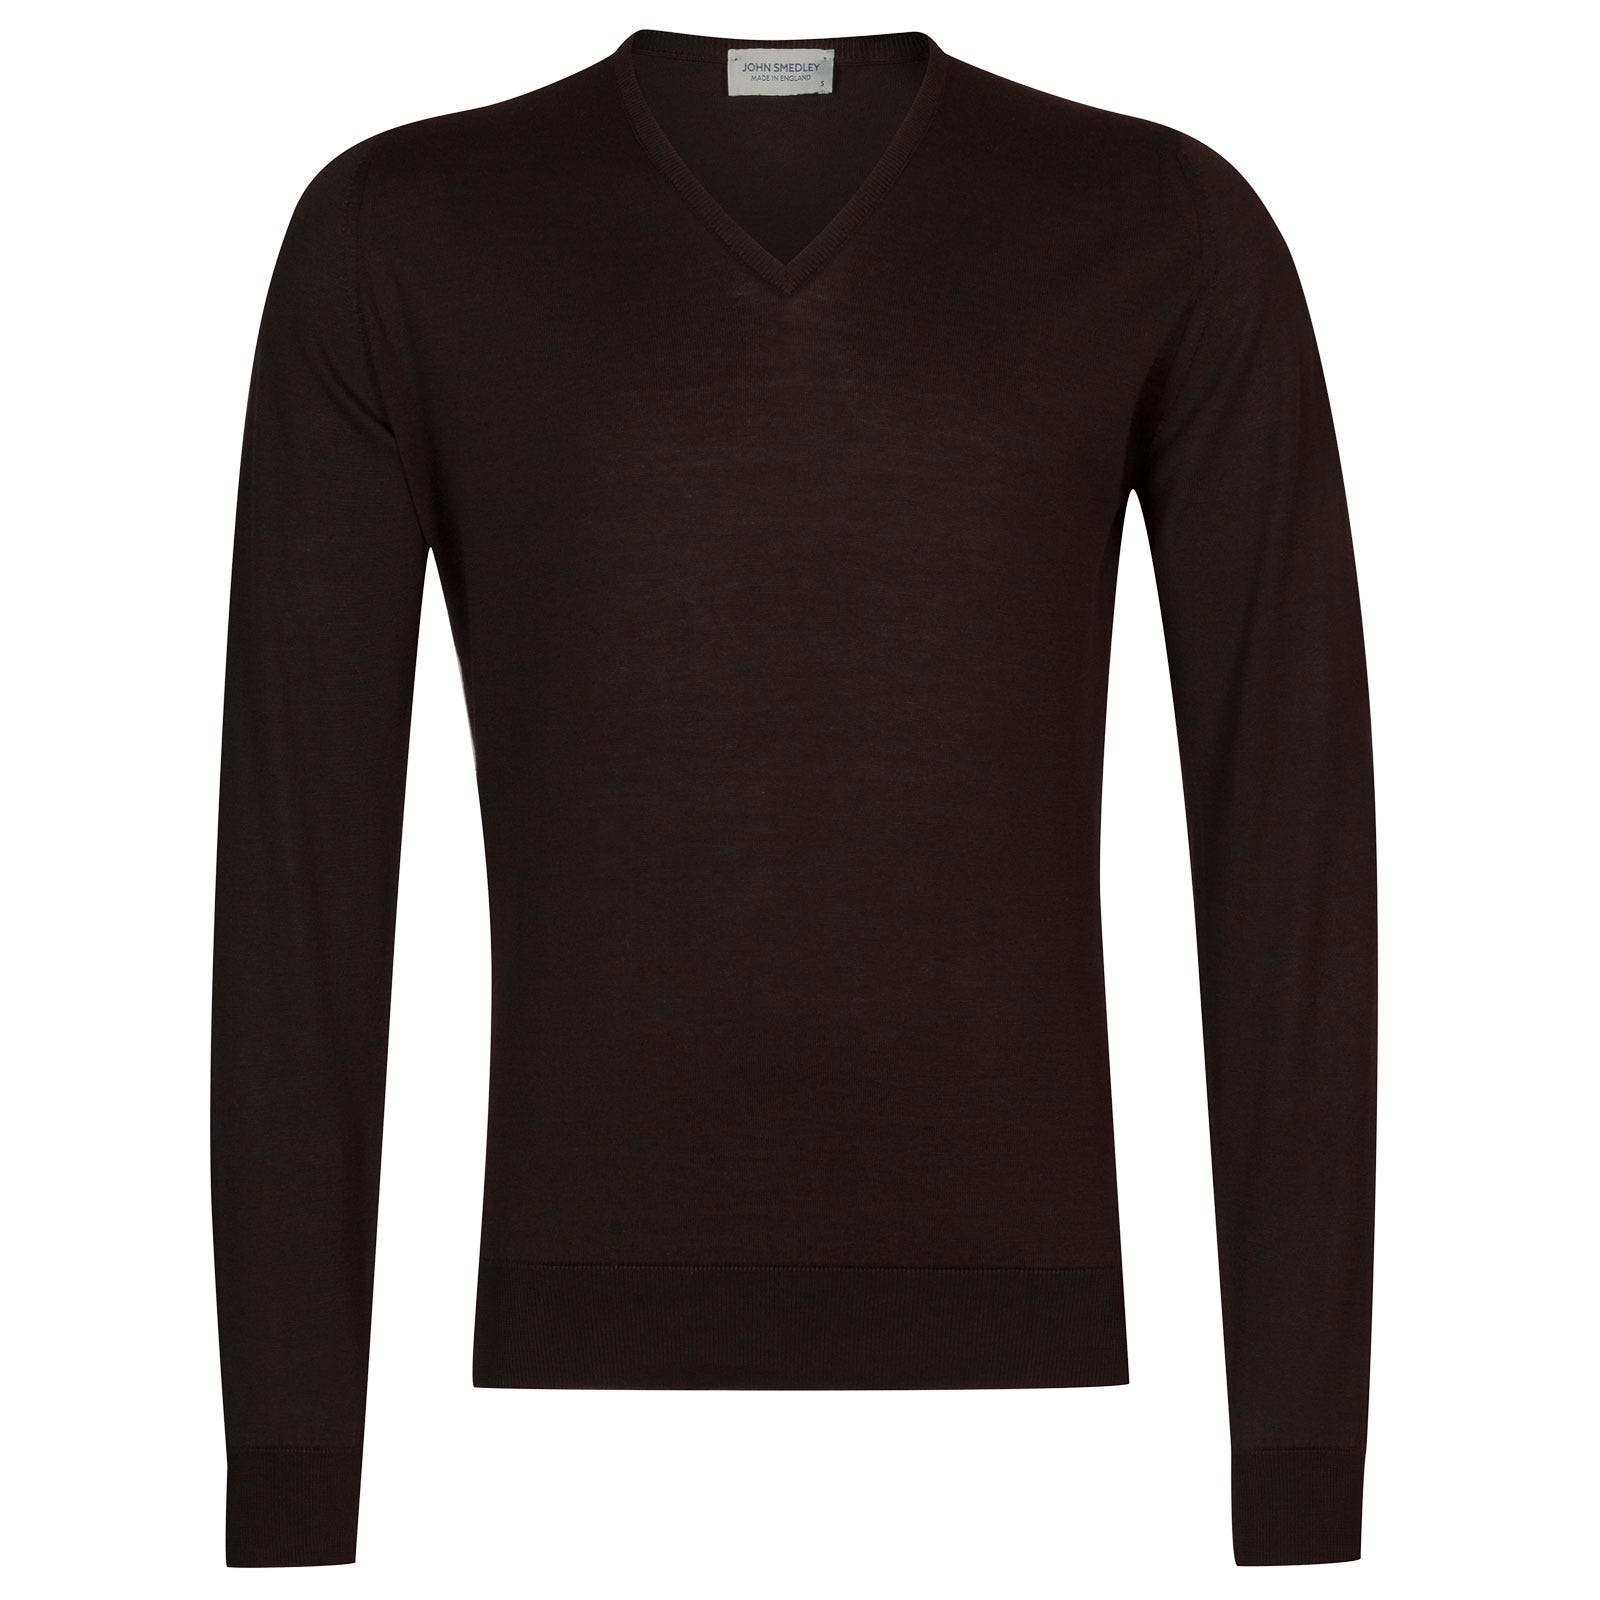 John Smedley Woburn Sea Island Cotton Pullover in Dark Leather-XXL